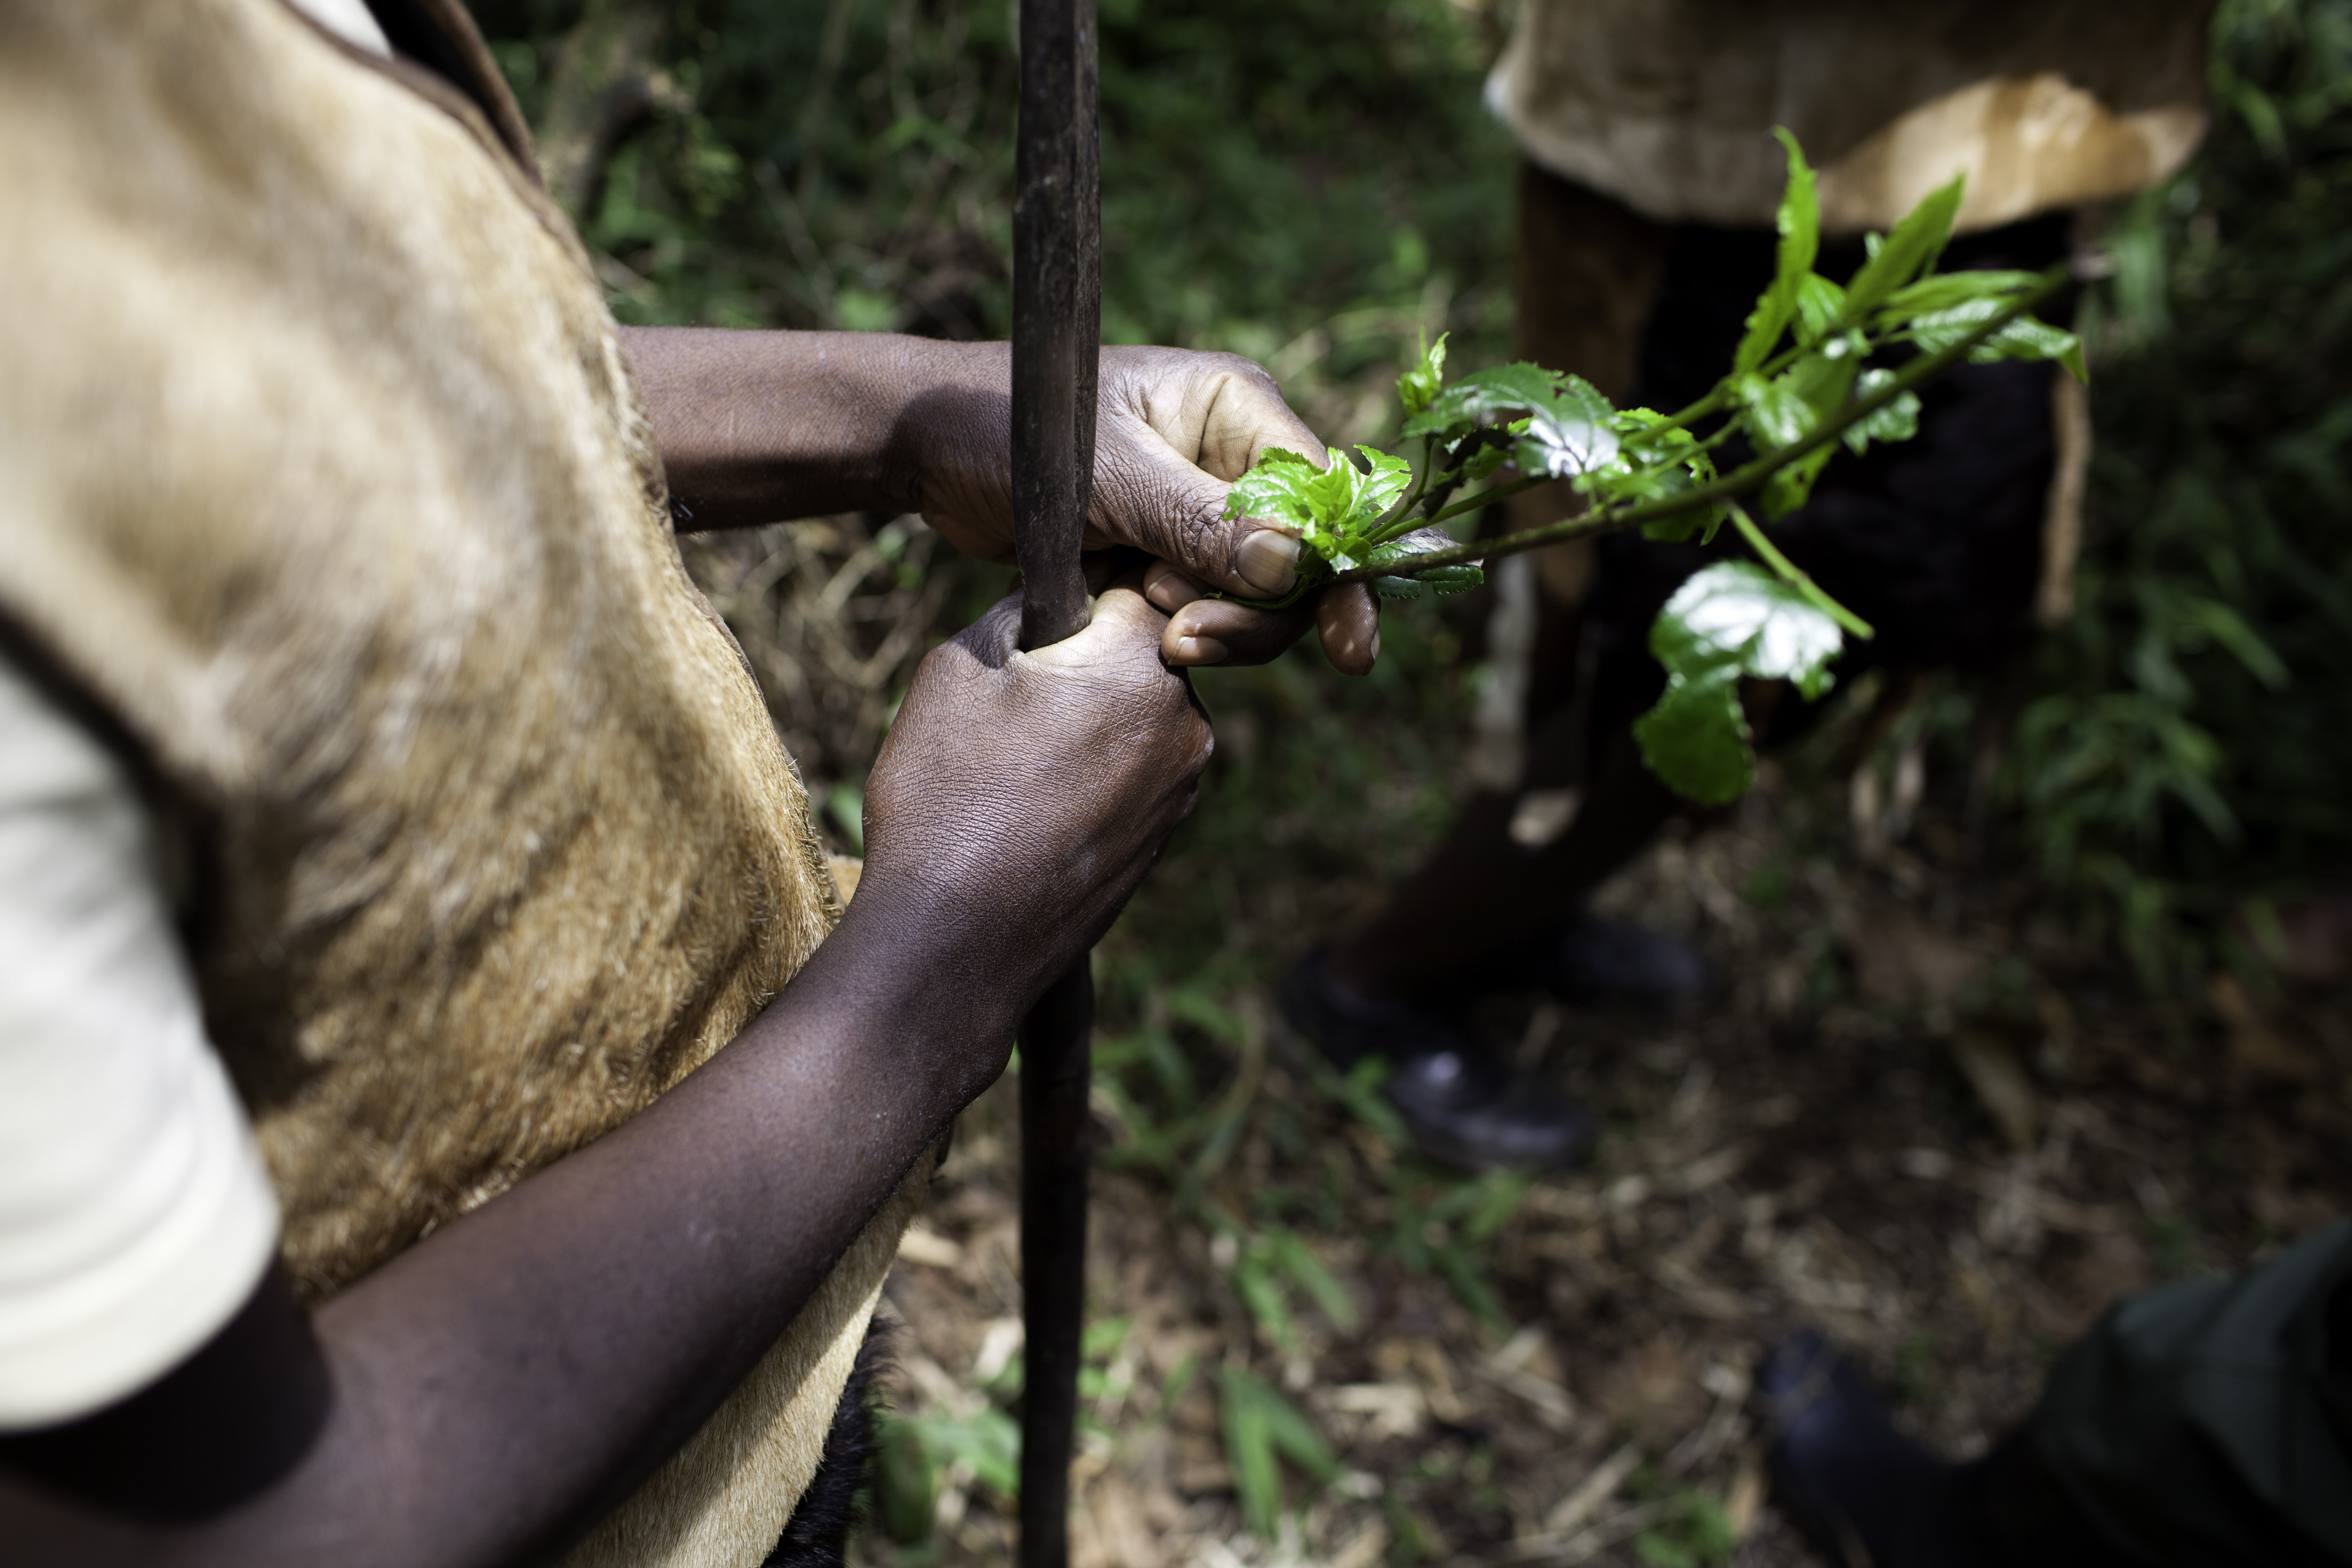 Living entirely off the land, the Batwa developed a deep knowledge of the forest's plants and their uses. The benefits of these plants are still known by many of the older generation, but have been largely lost on the youth who have spent their entire lives living outside the forest.